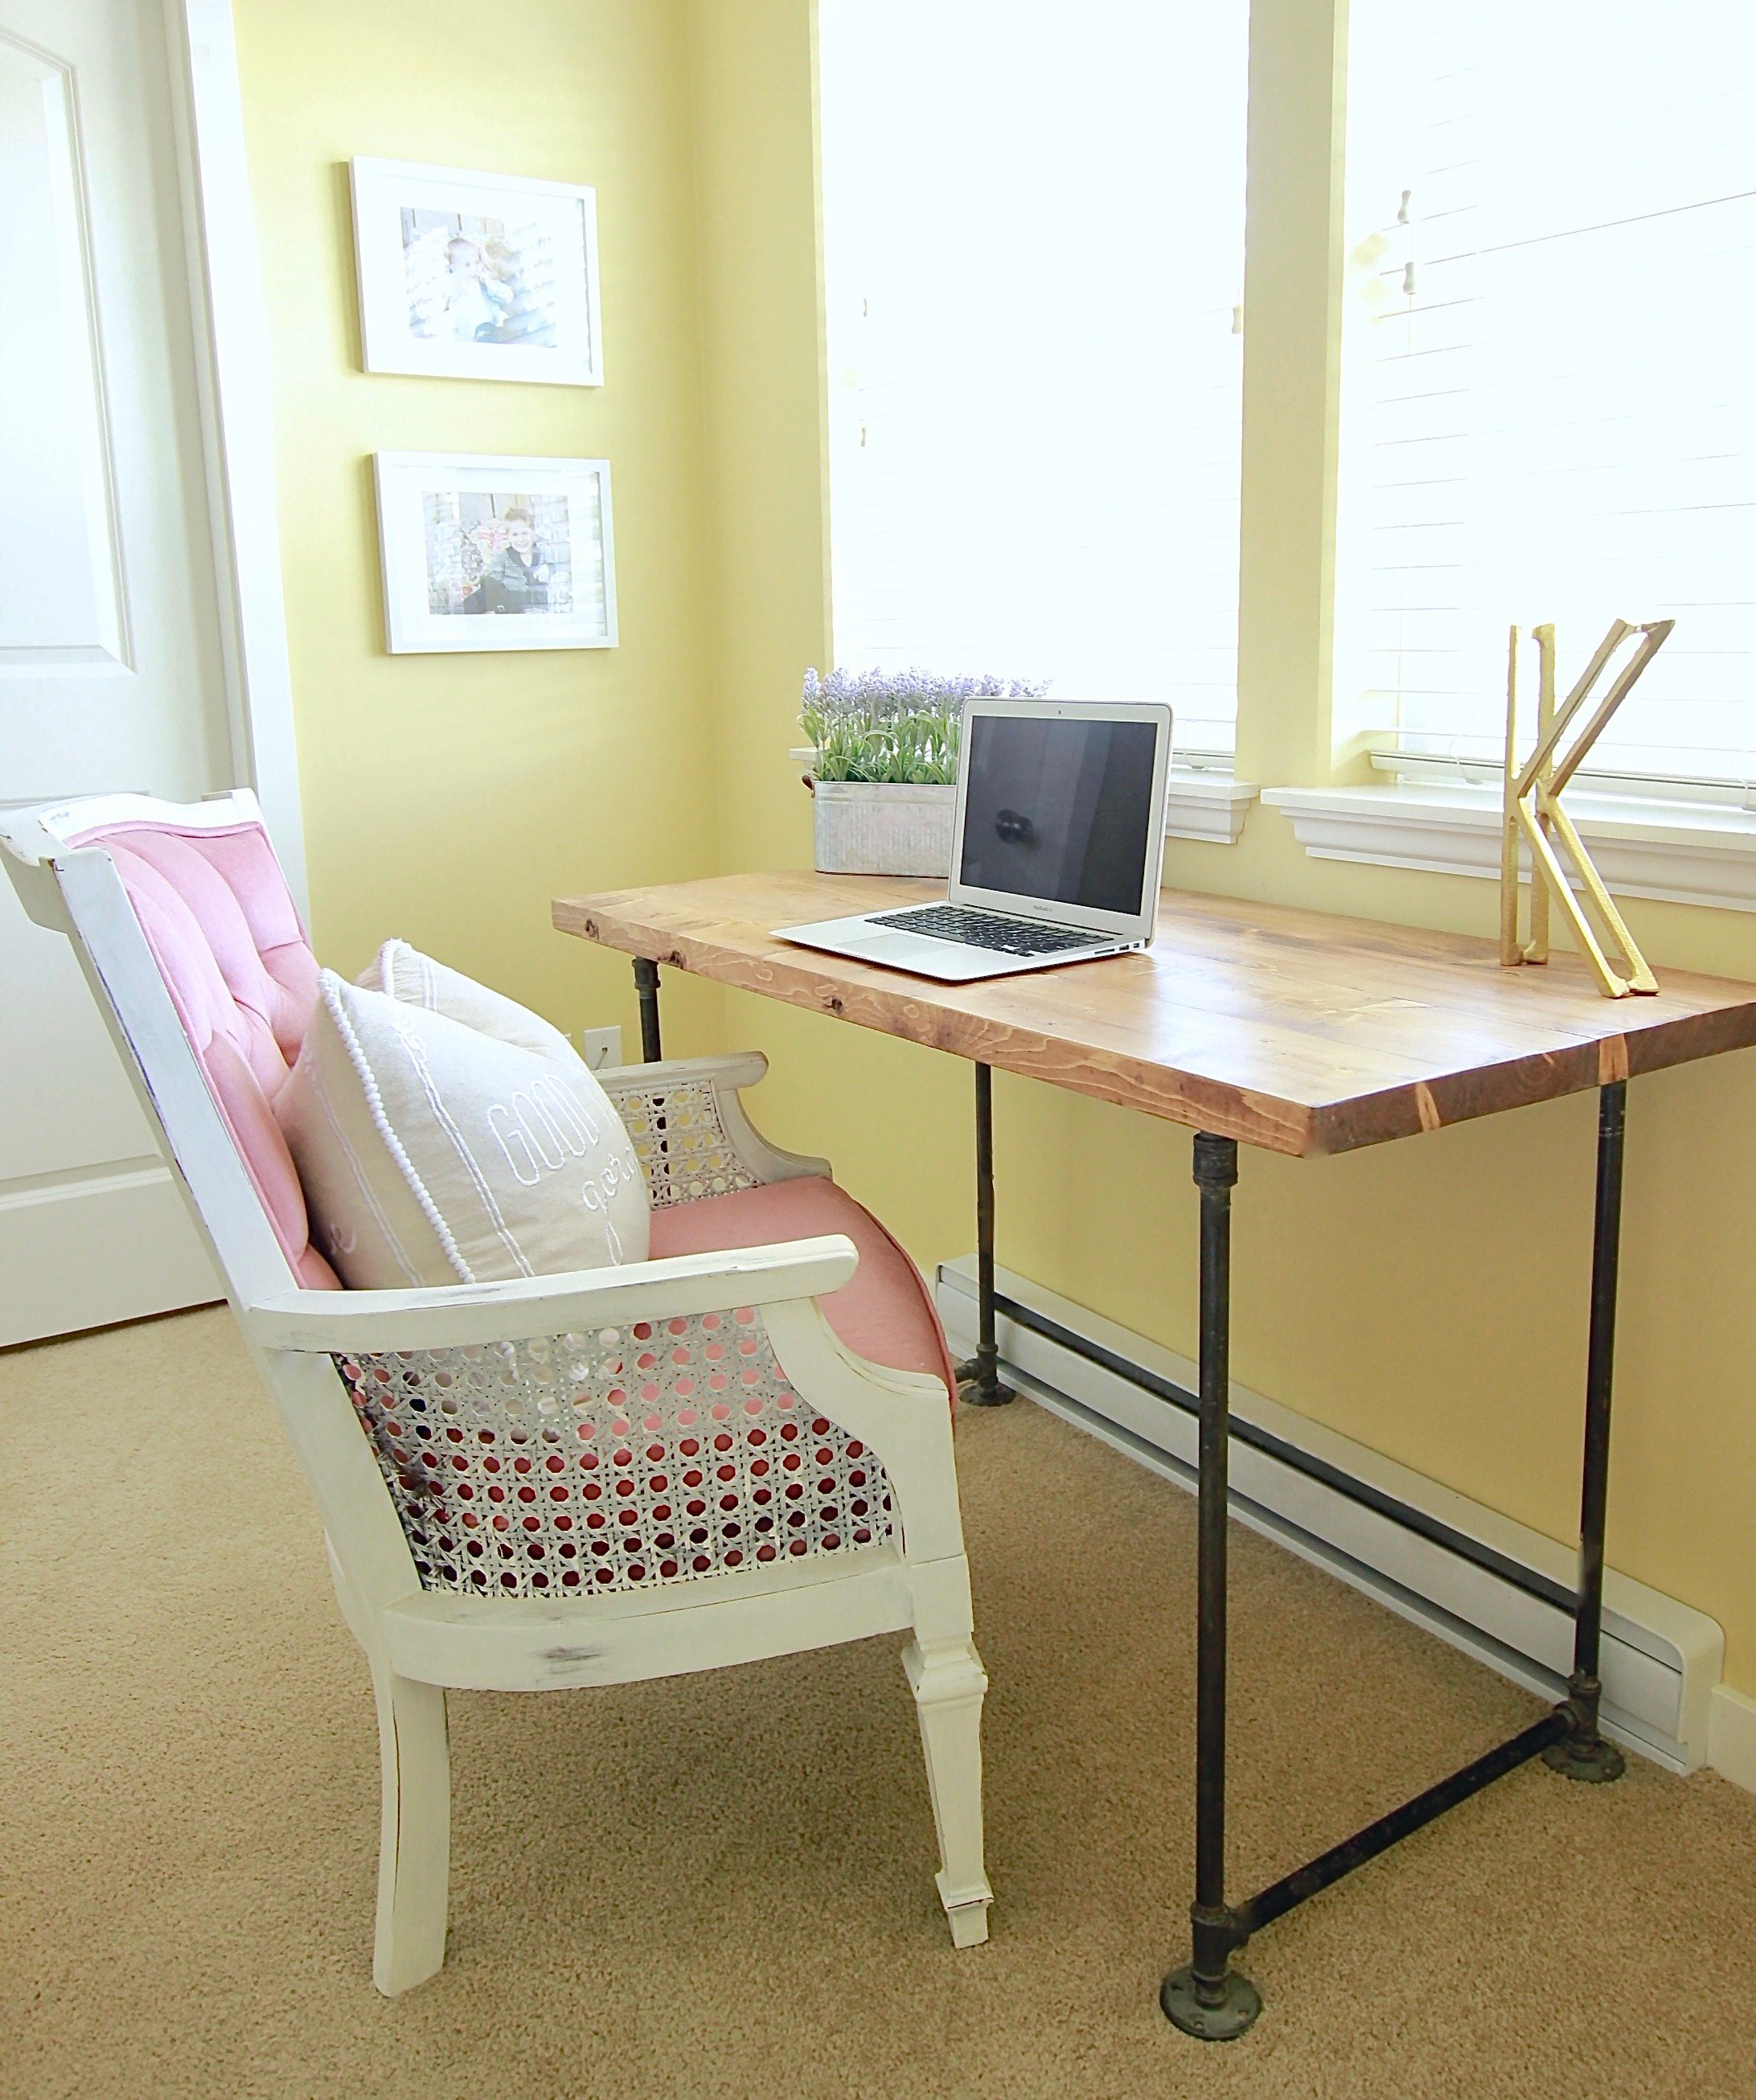 Makeshift piping Industrial Desk www.whitepicketfarmhouse.com